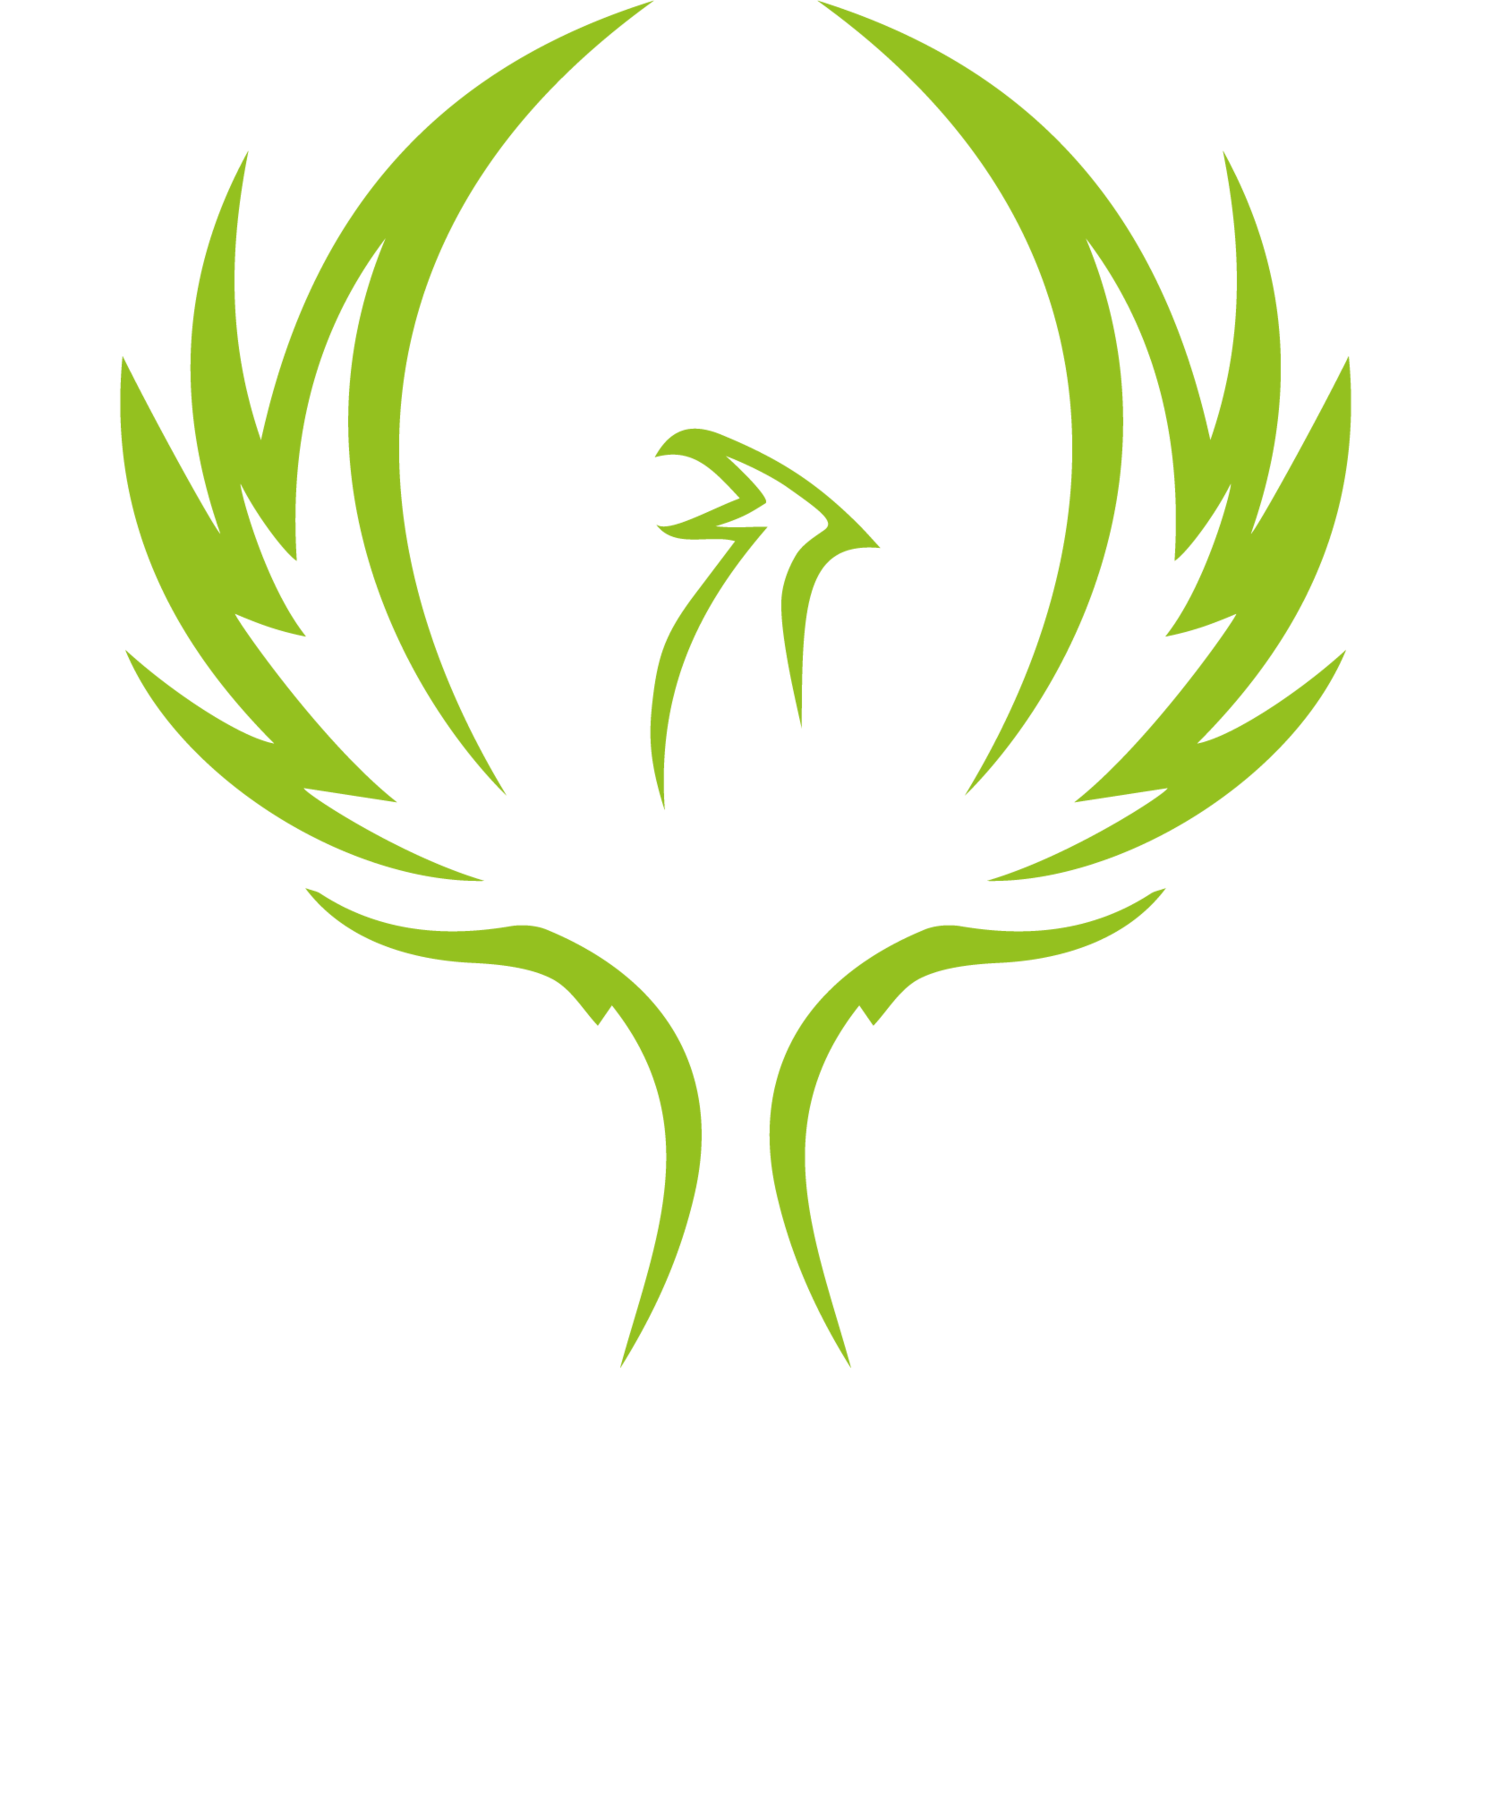 Wrist action in the golf swing  — Limitless Golf Performance